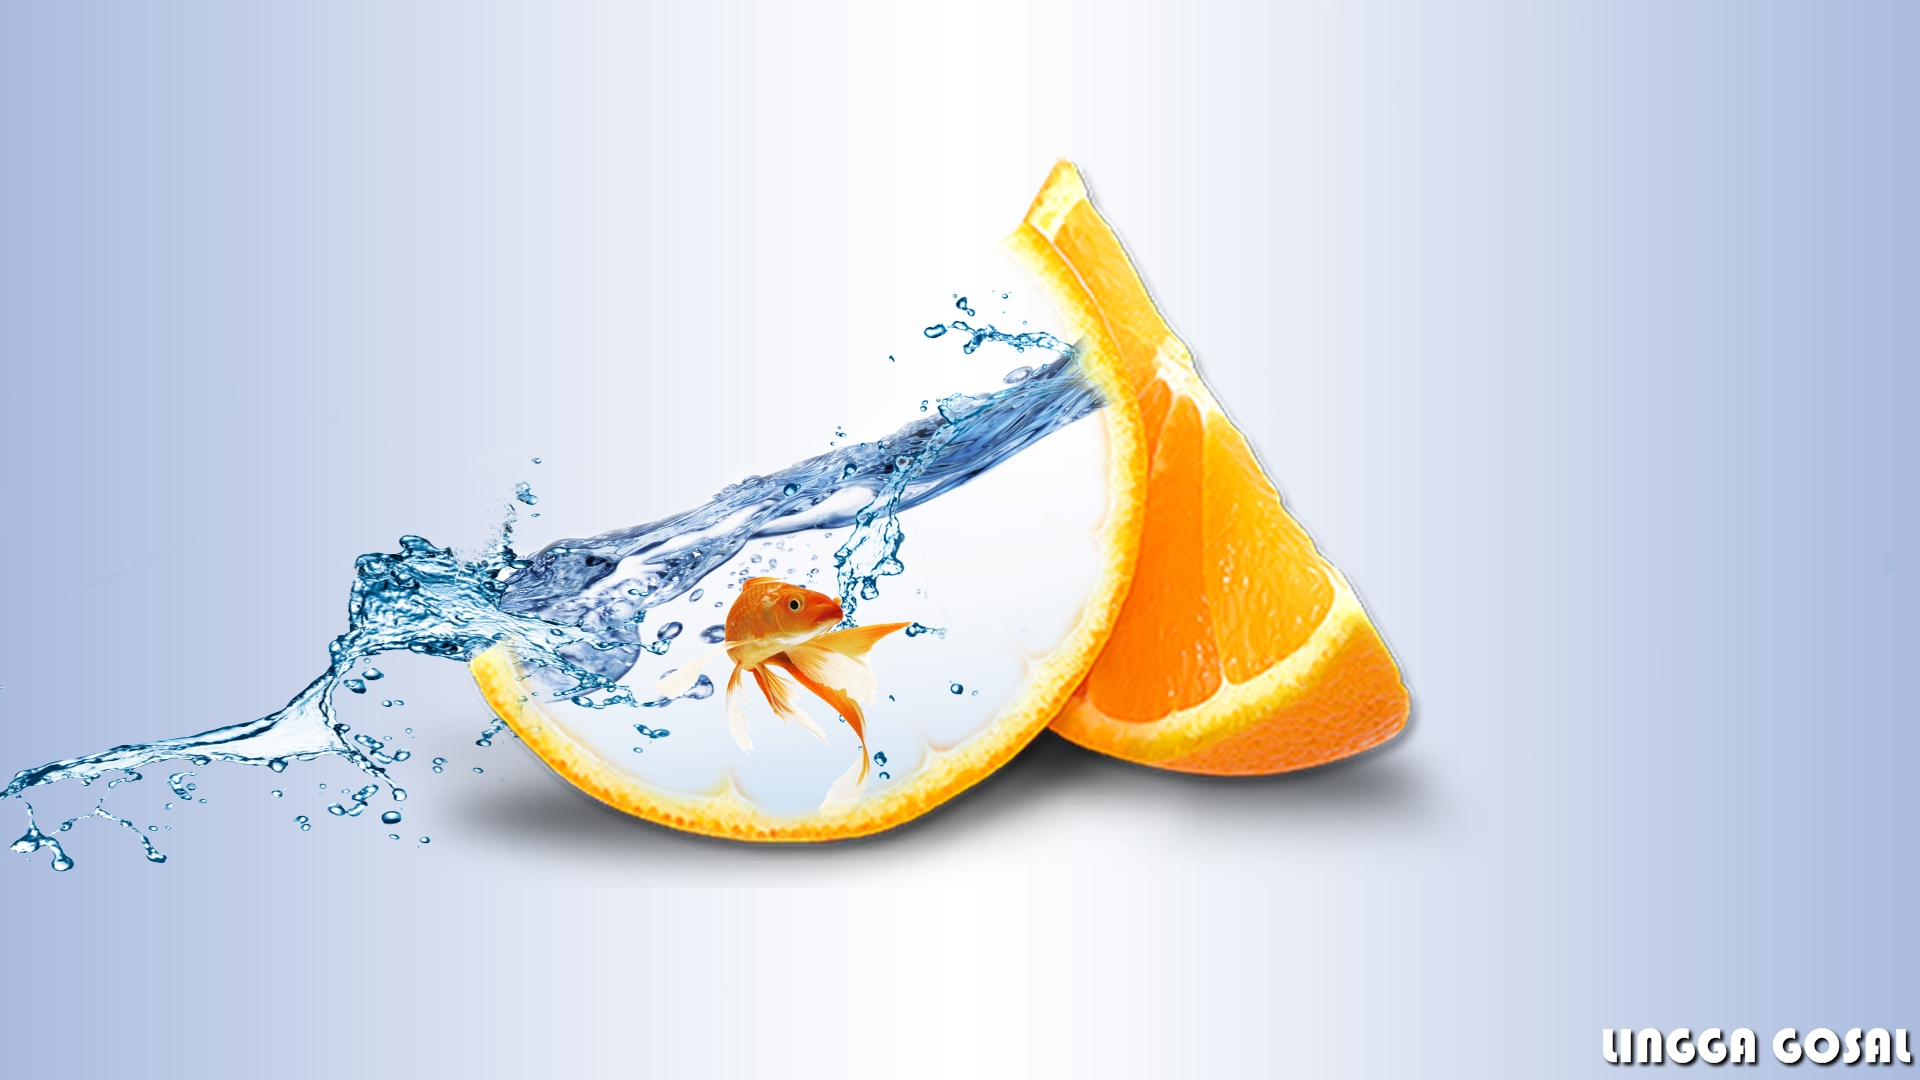 orange fruit photo manipulation aquarium gold fish by linggagosal6661 on deviantart